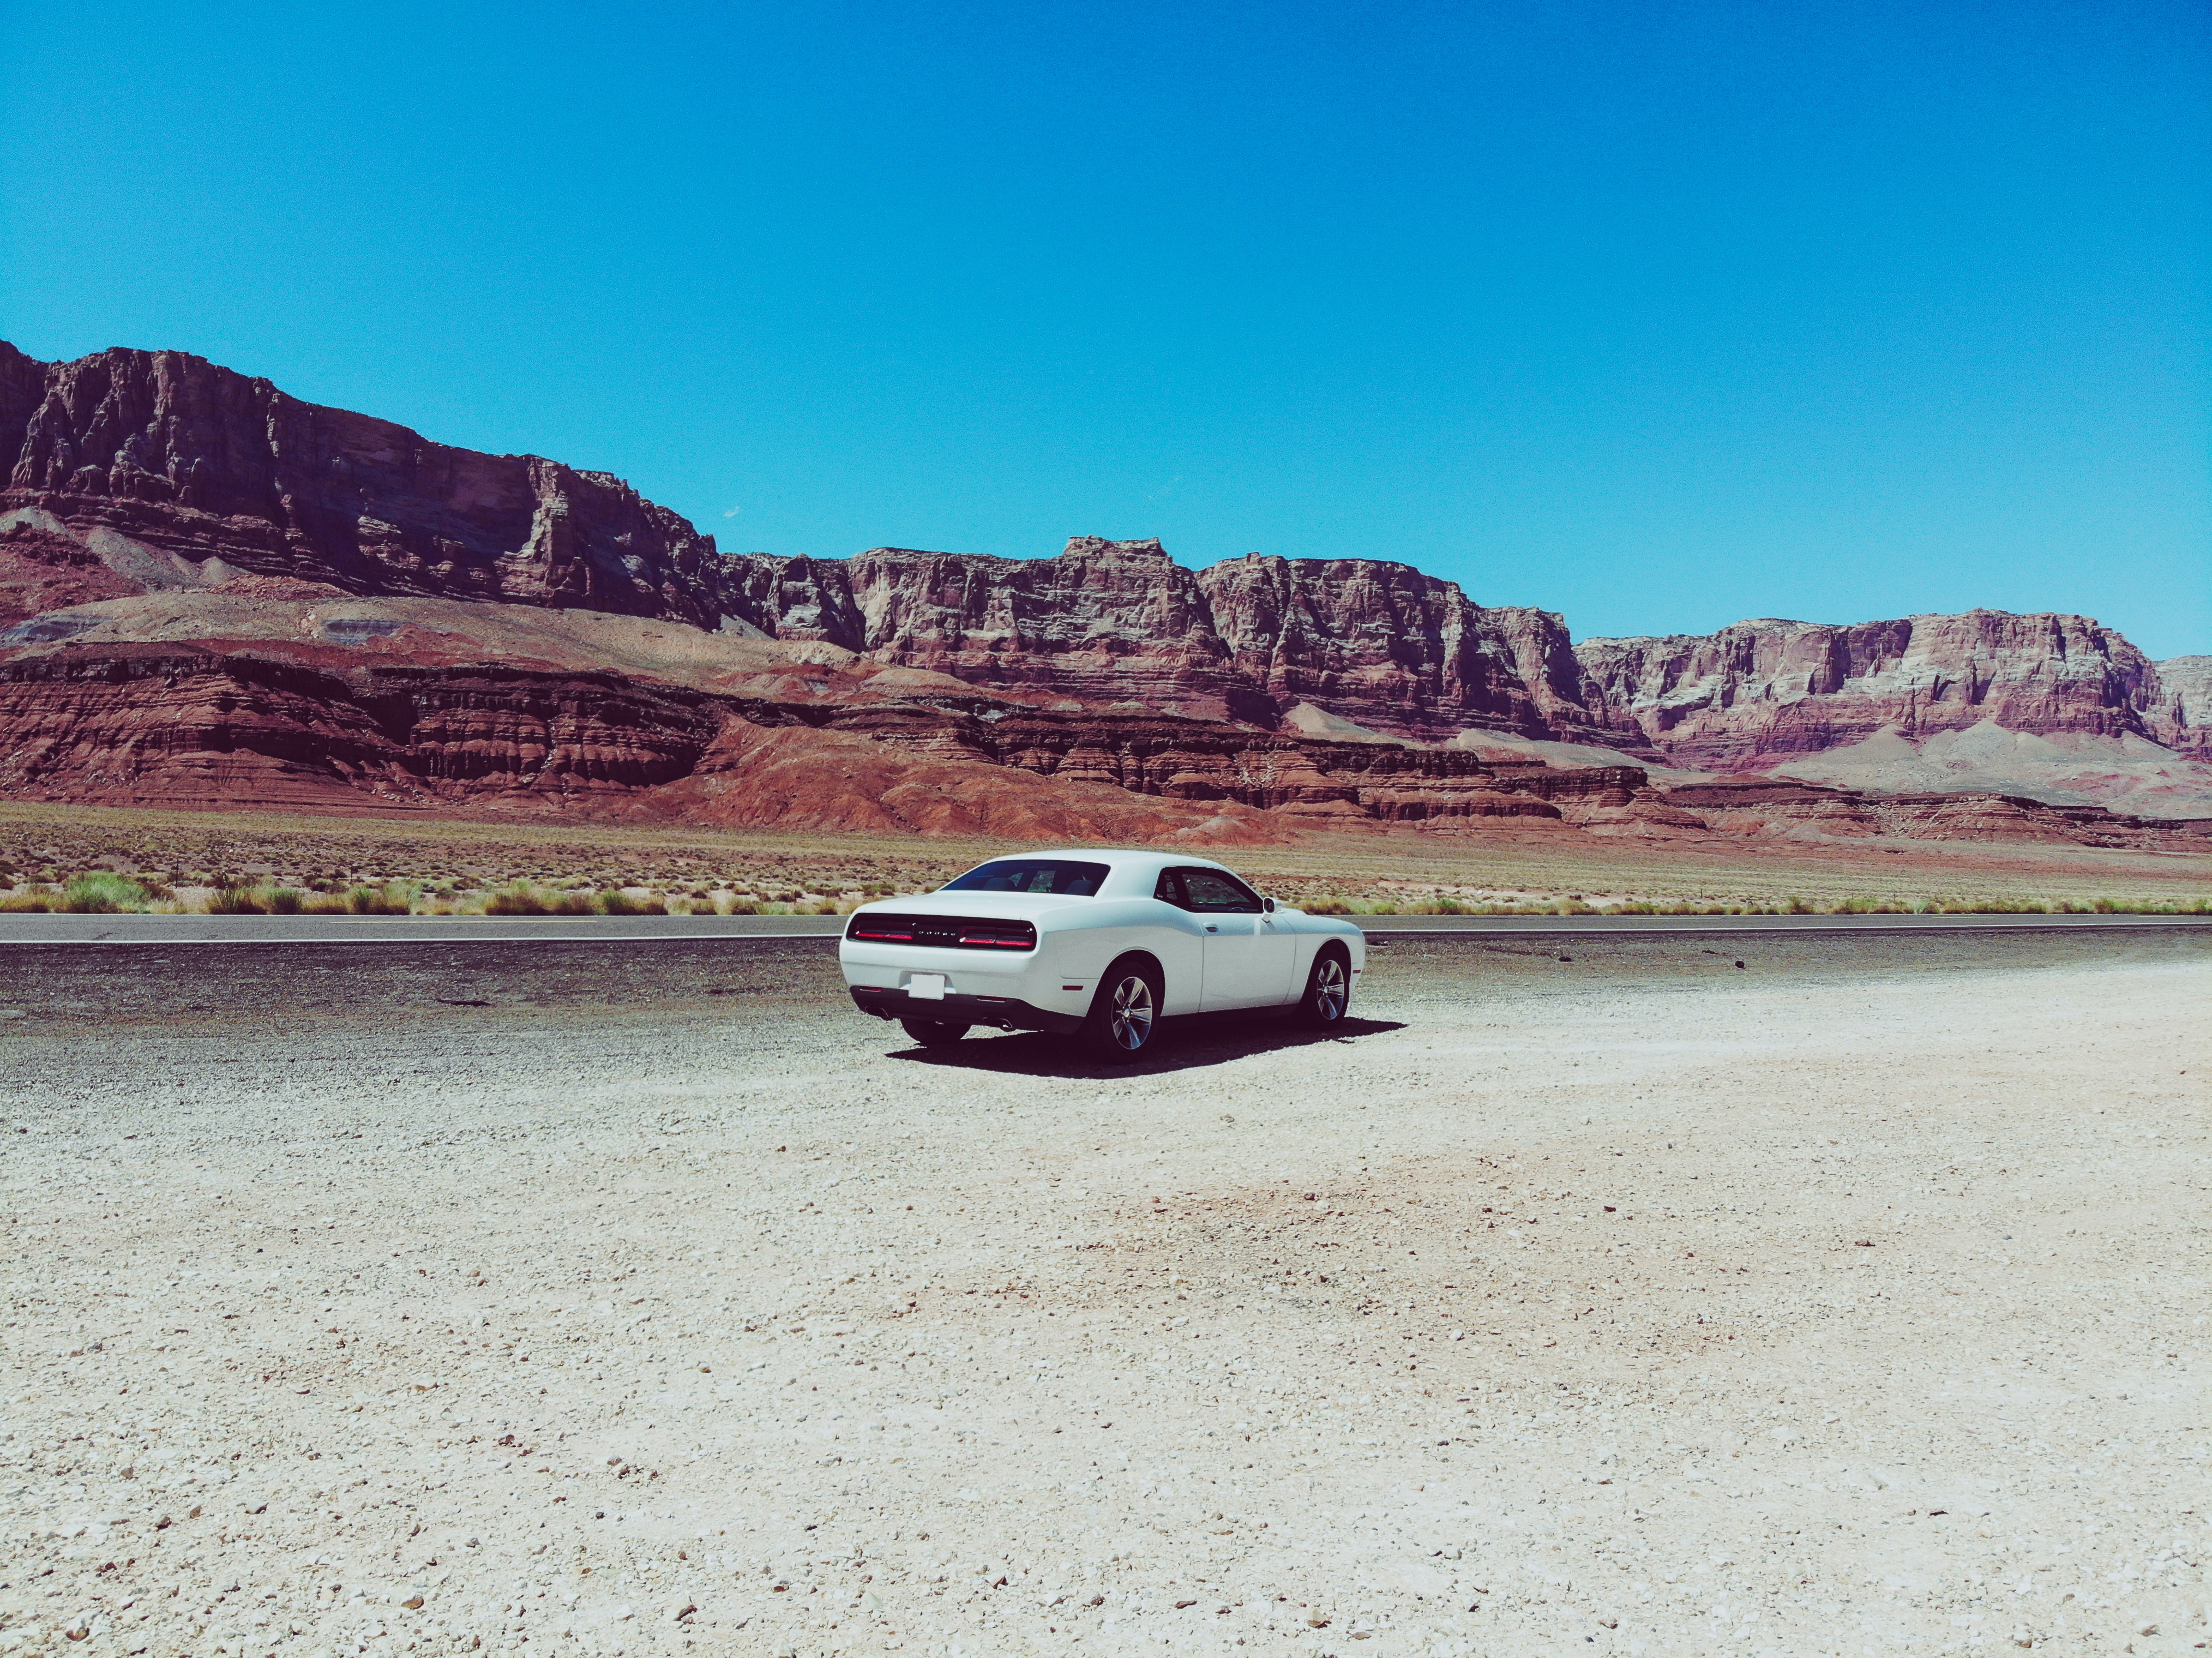 white coupe parked on desert field